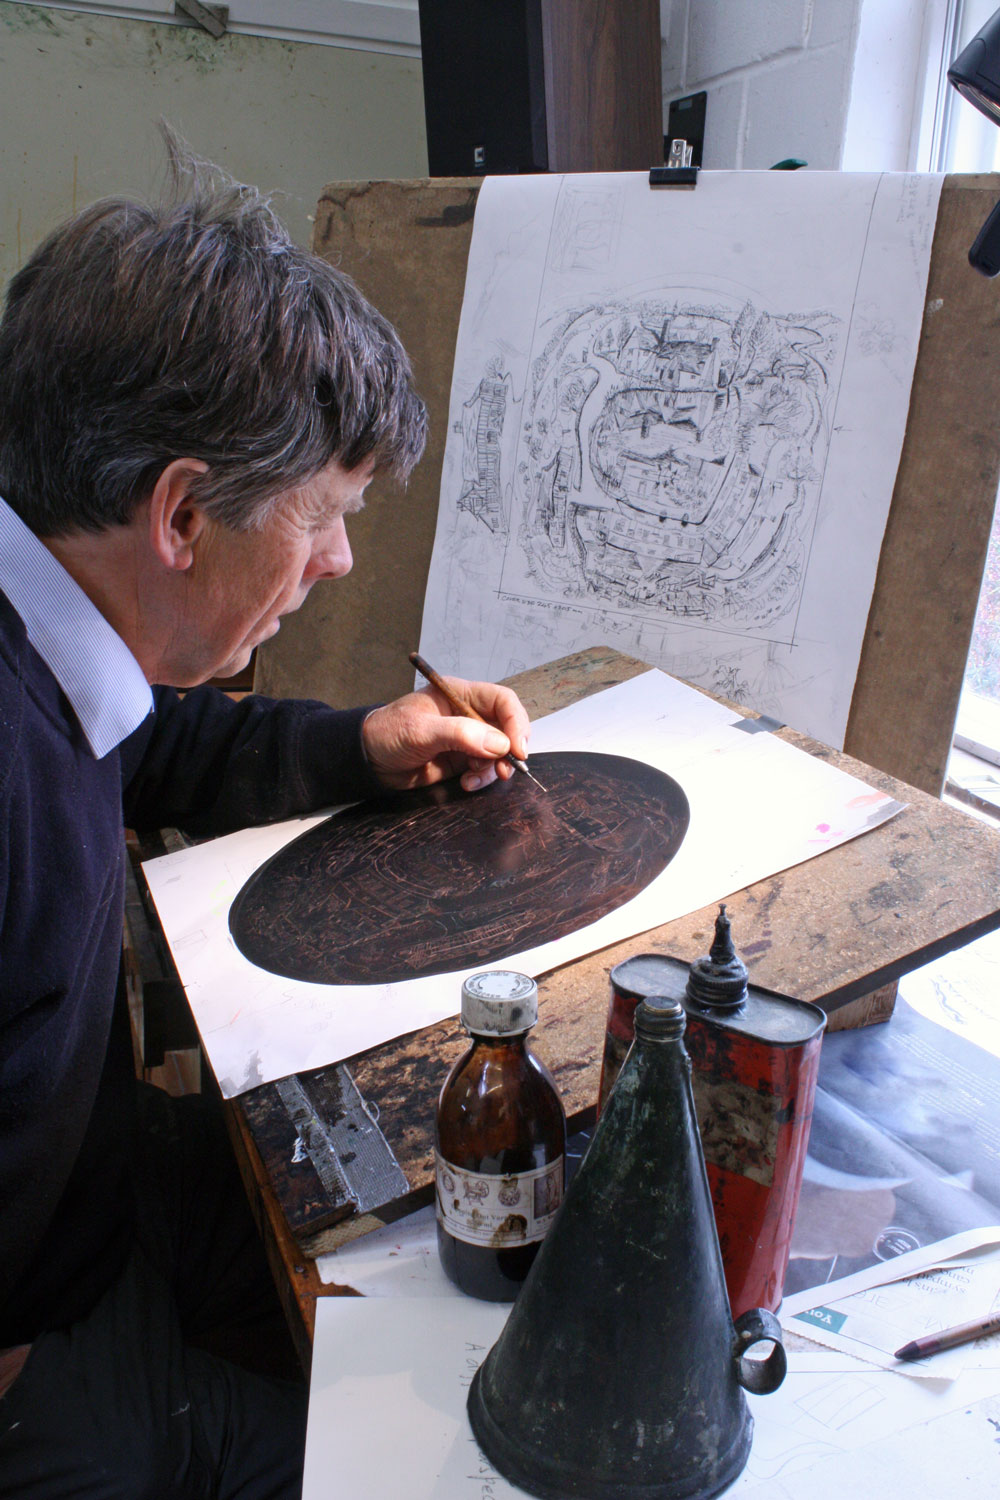 Glynn Thomas  drawing on a plate